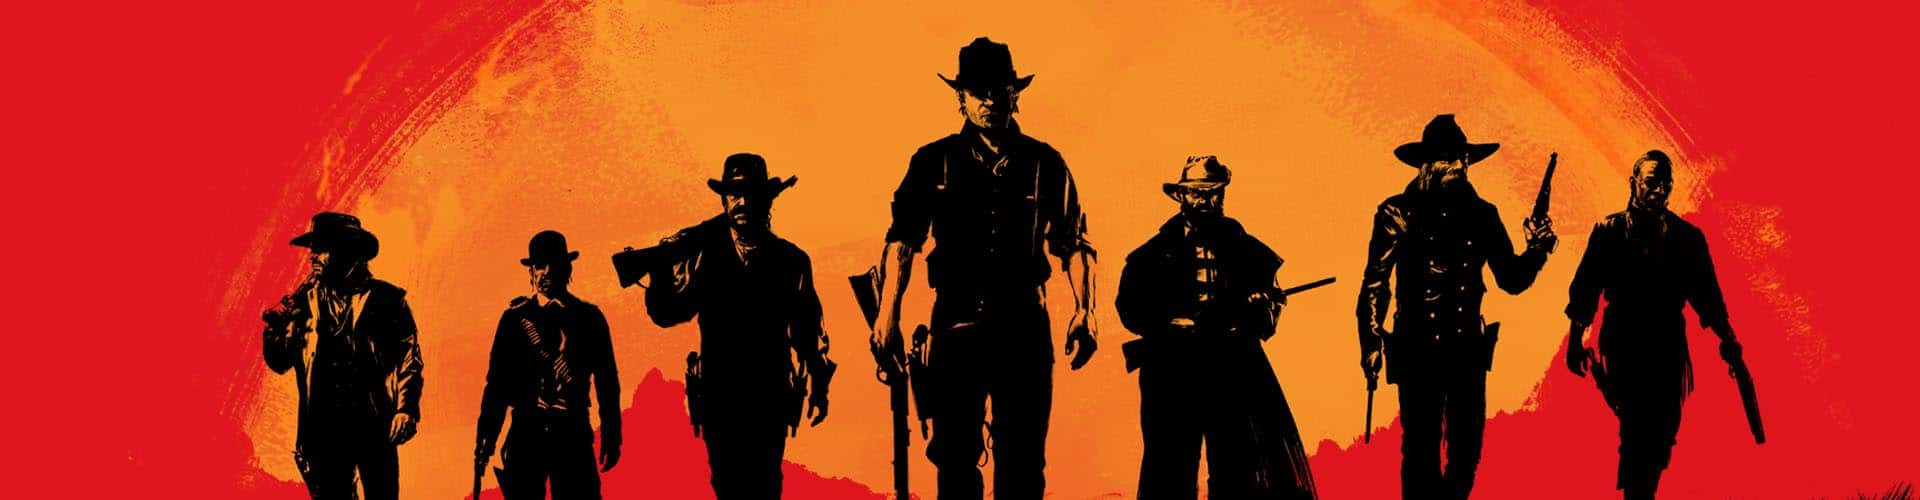 Red Dead Redemption 2 Release Date, Trailer, News and Rumors